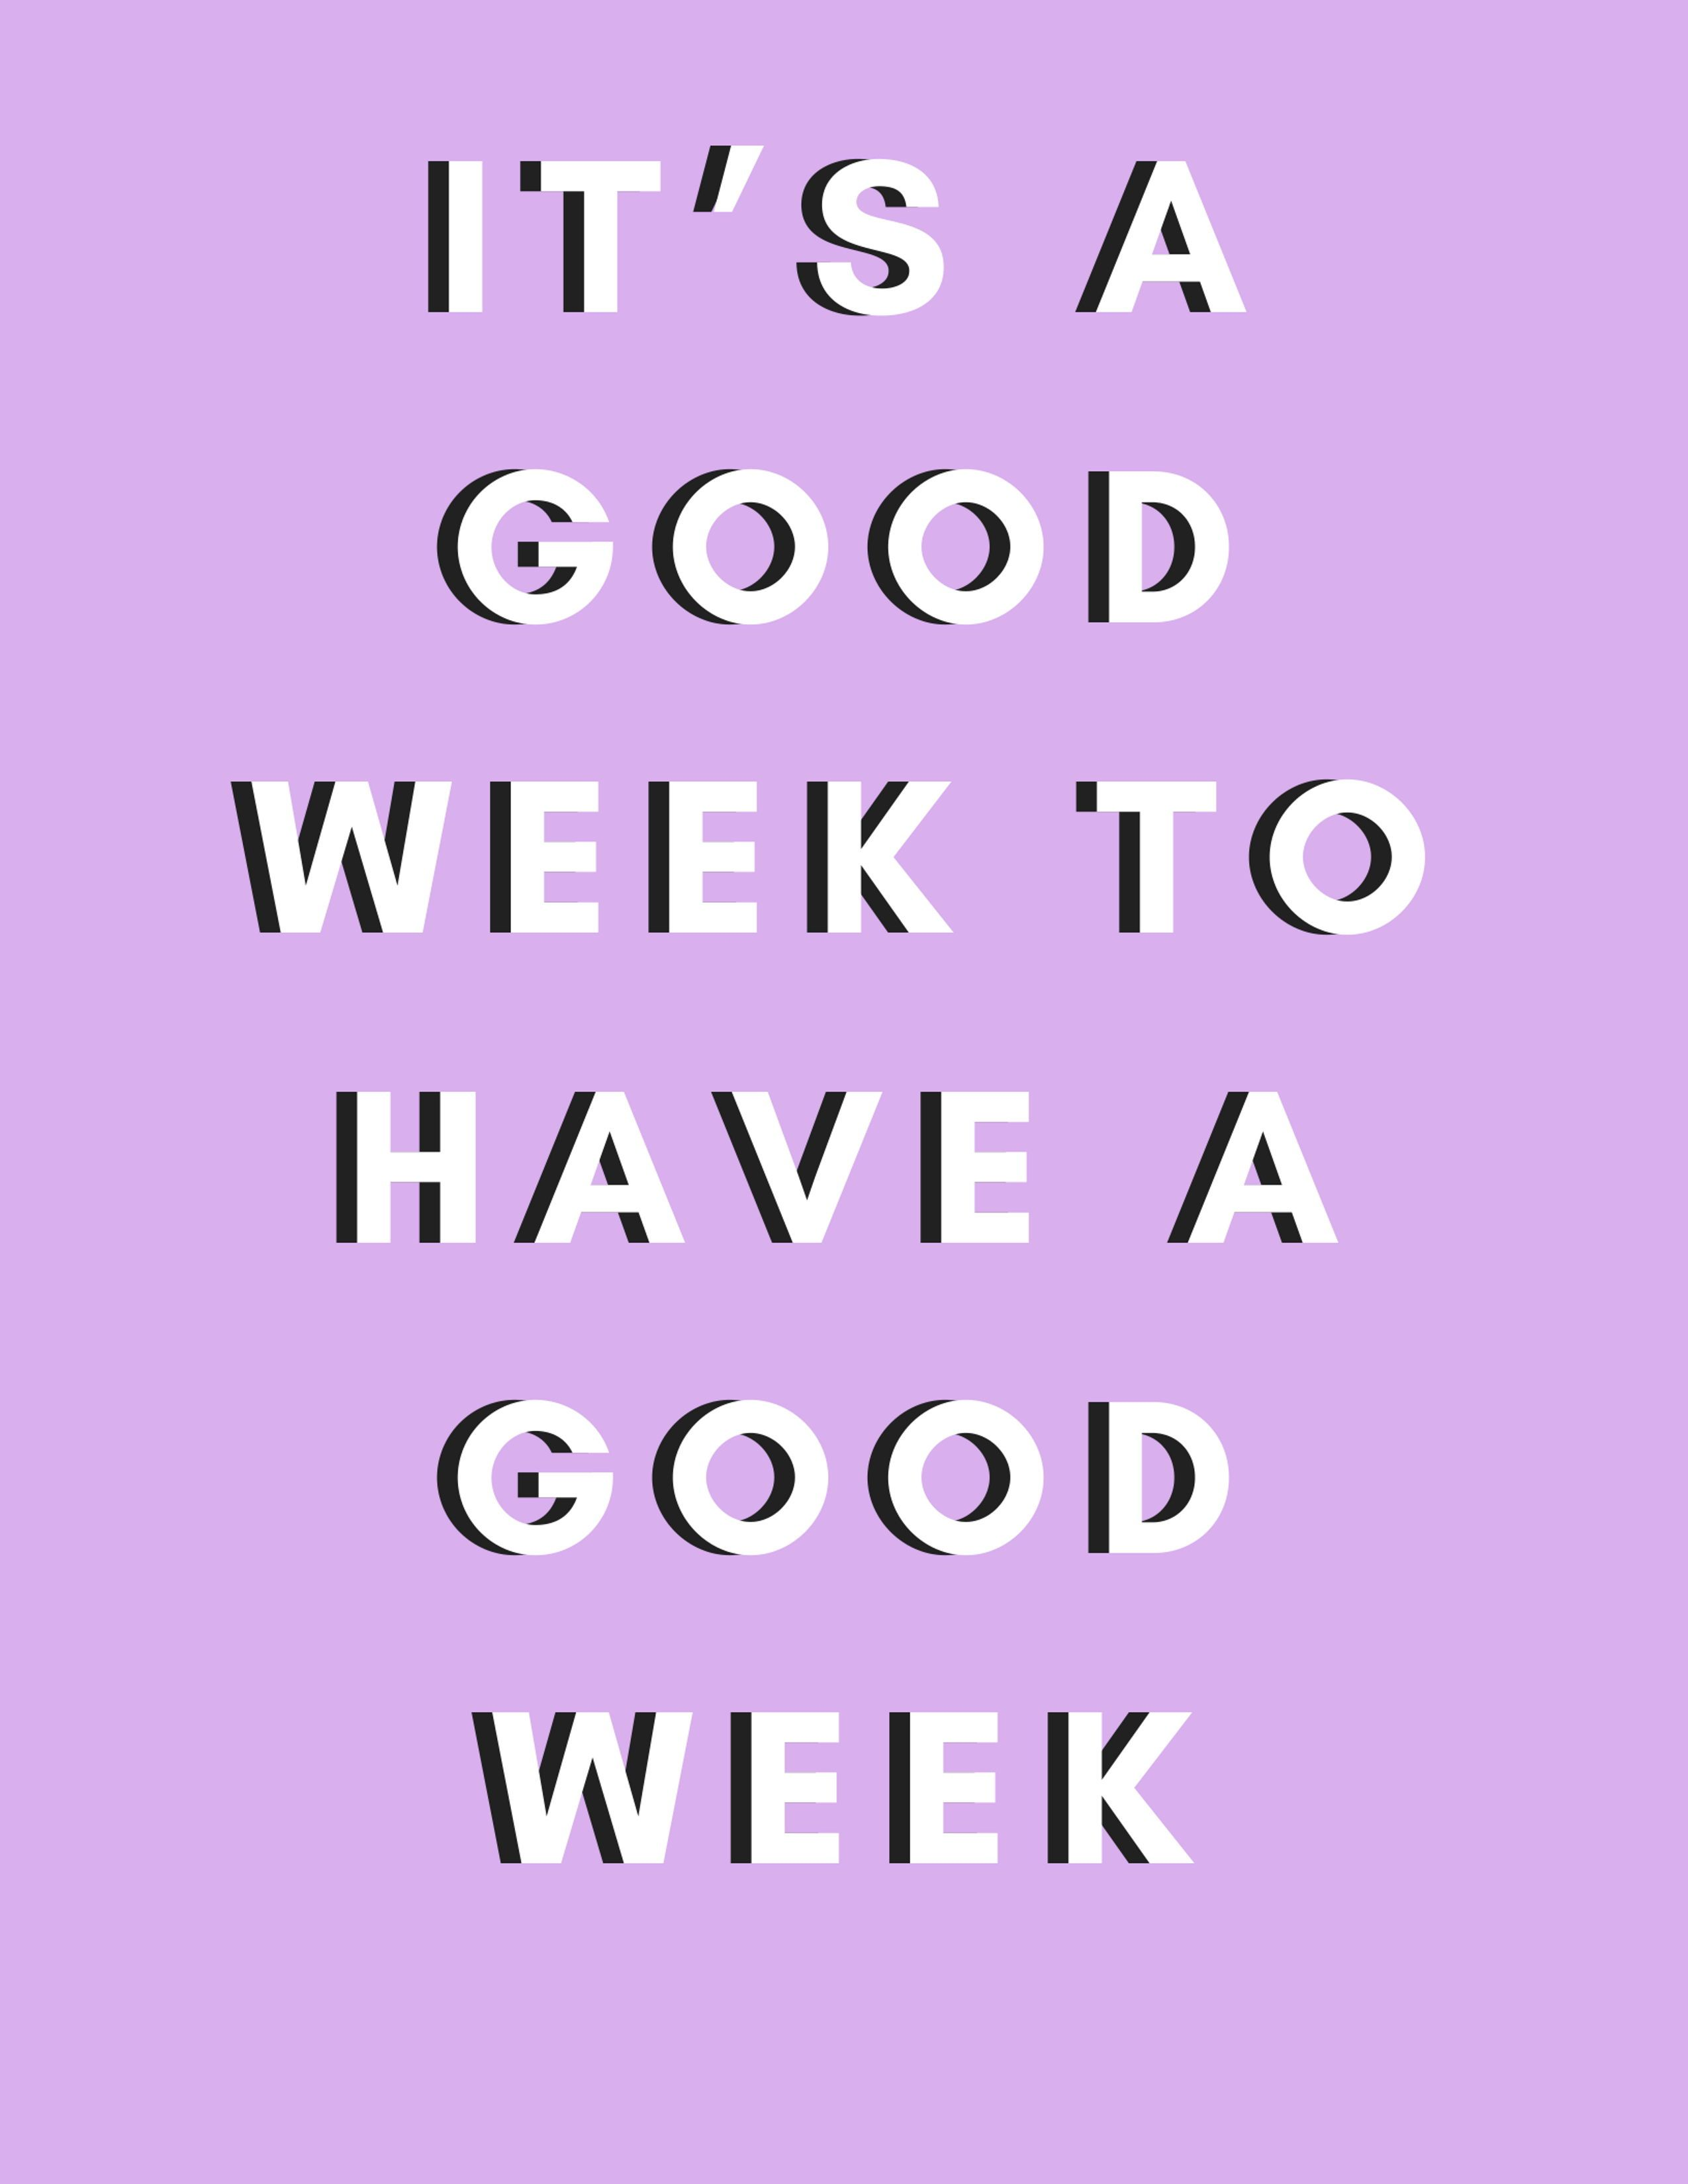 It's a good week to have a good week. (With images) | Cool words ...